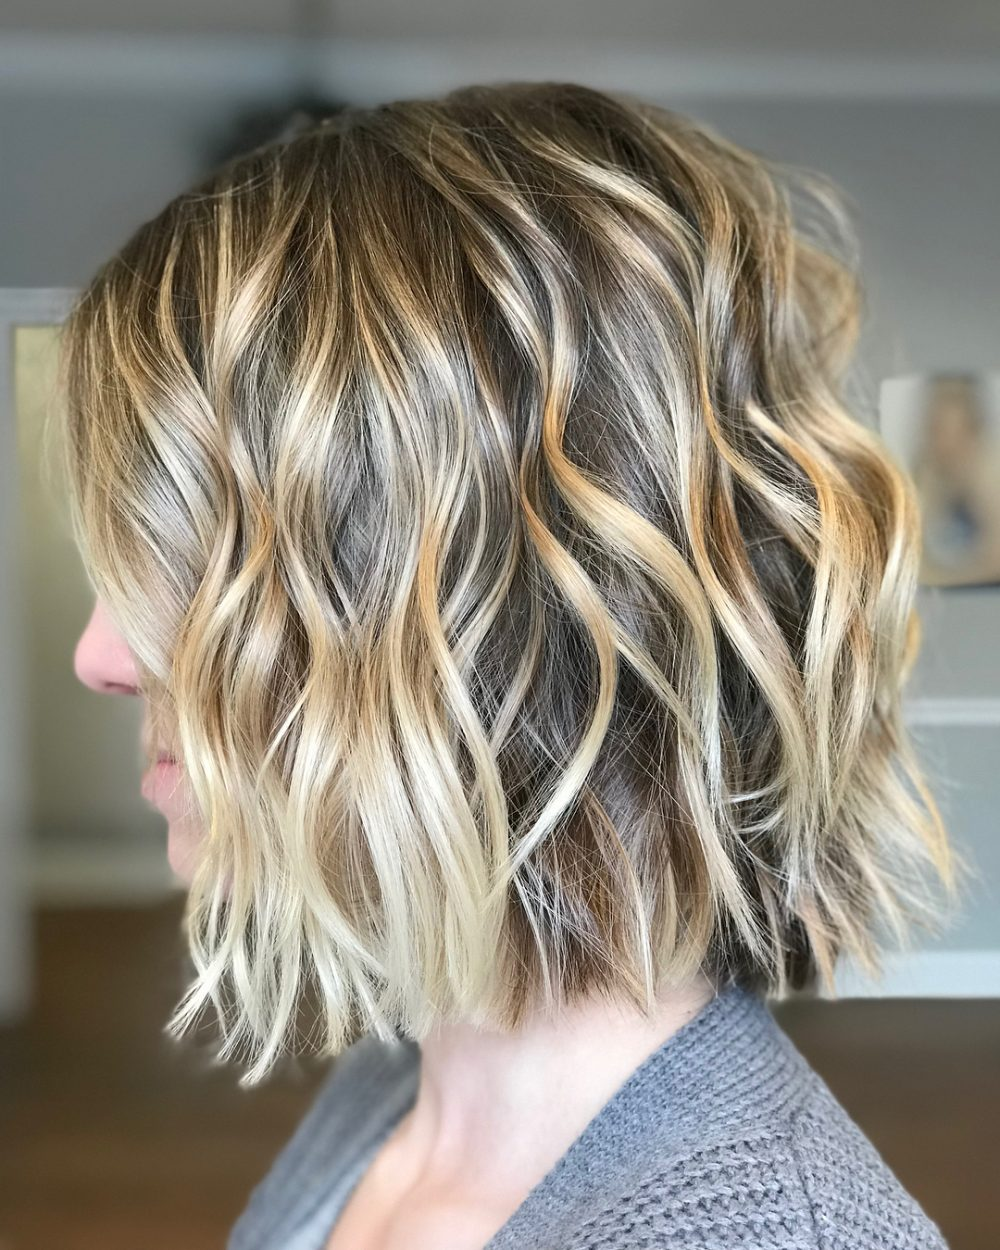 Top 26 Choppy Haircuts & Hairstyles You'll See Right Now